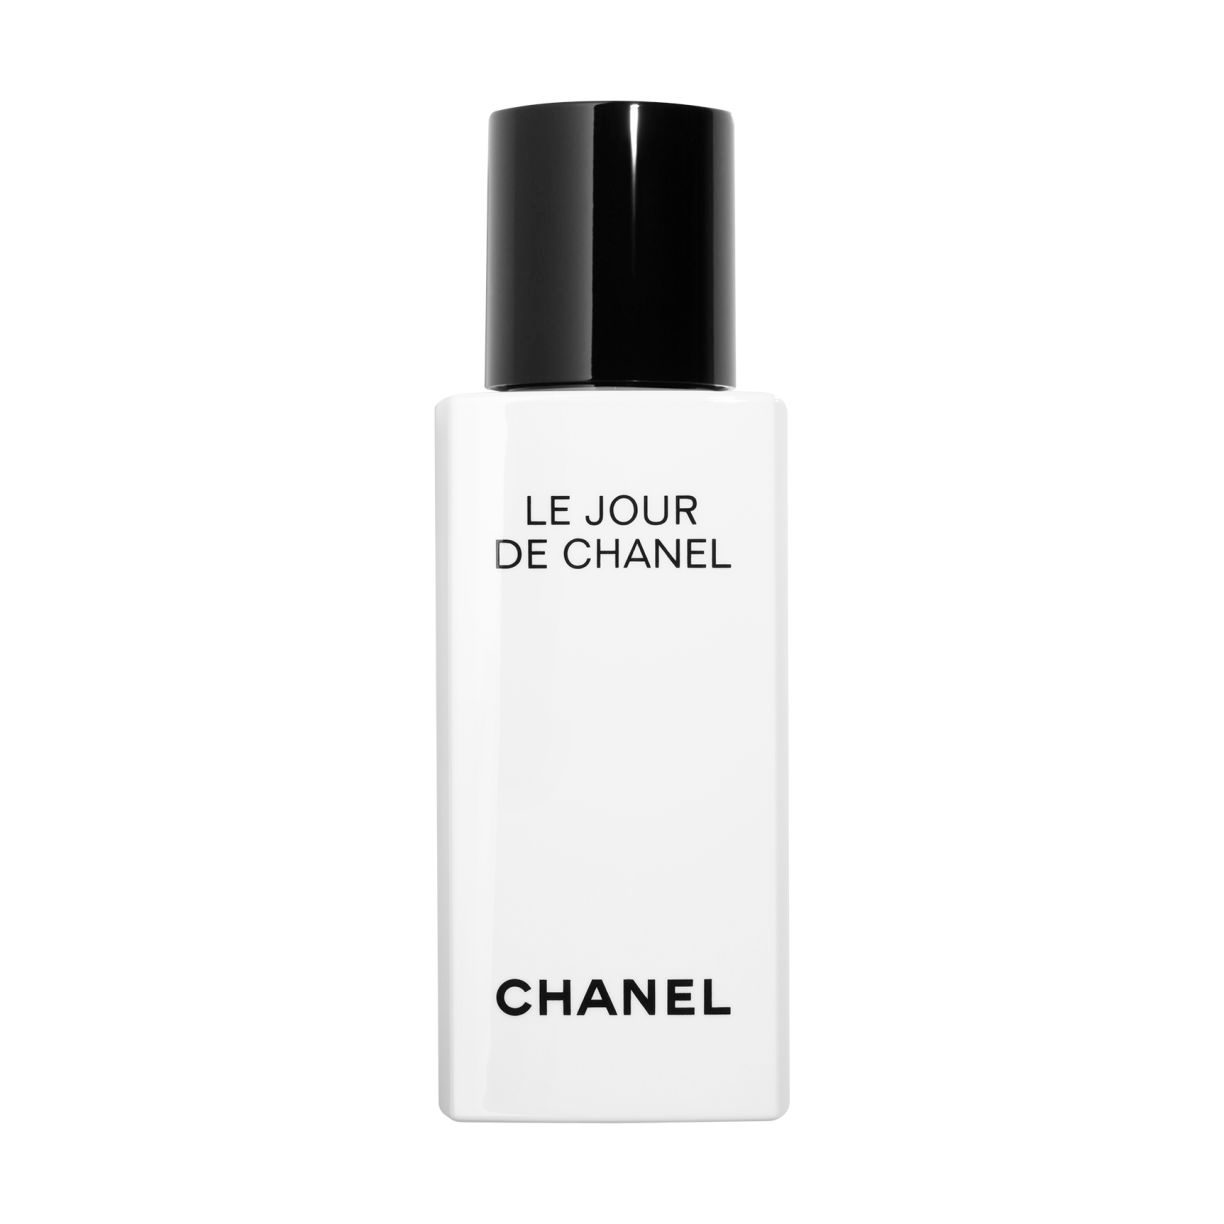 LE JOUR DE CHANEL REACTIVATE PUMP BOTTLE 50ML